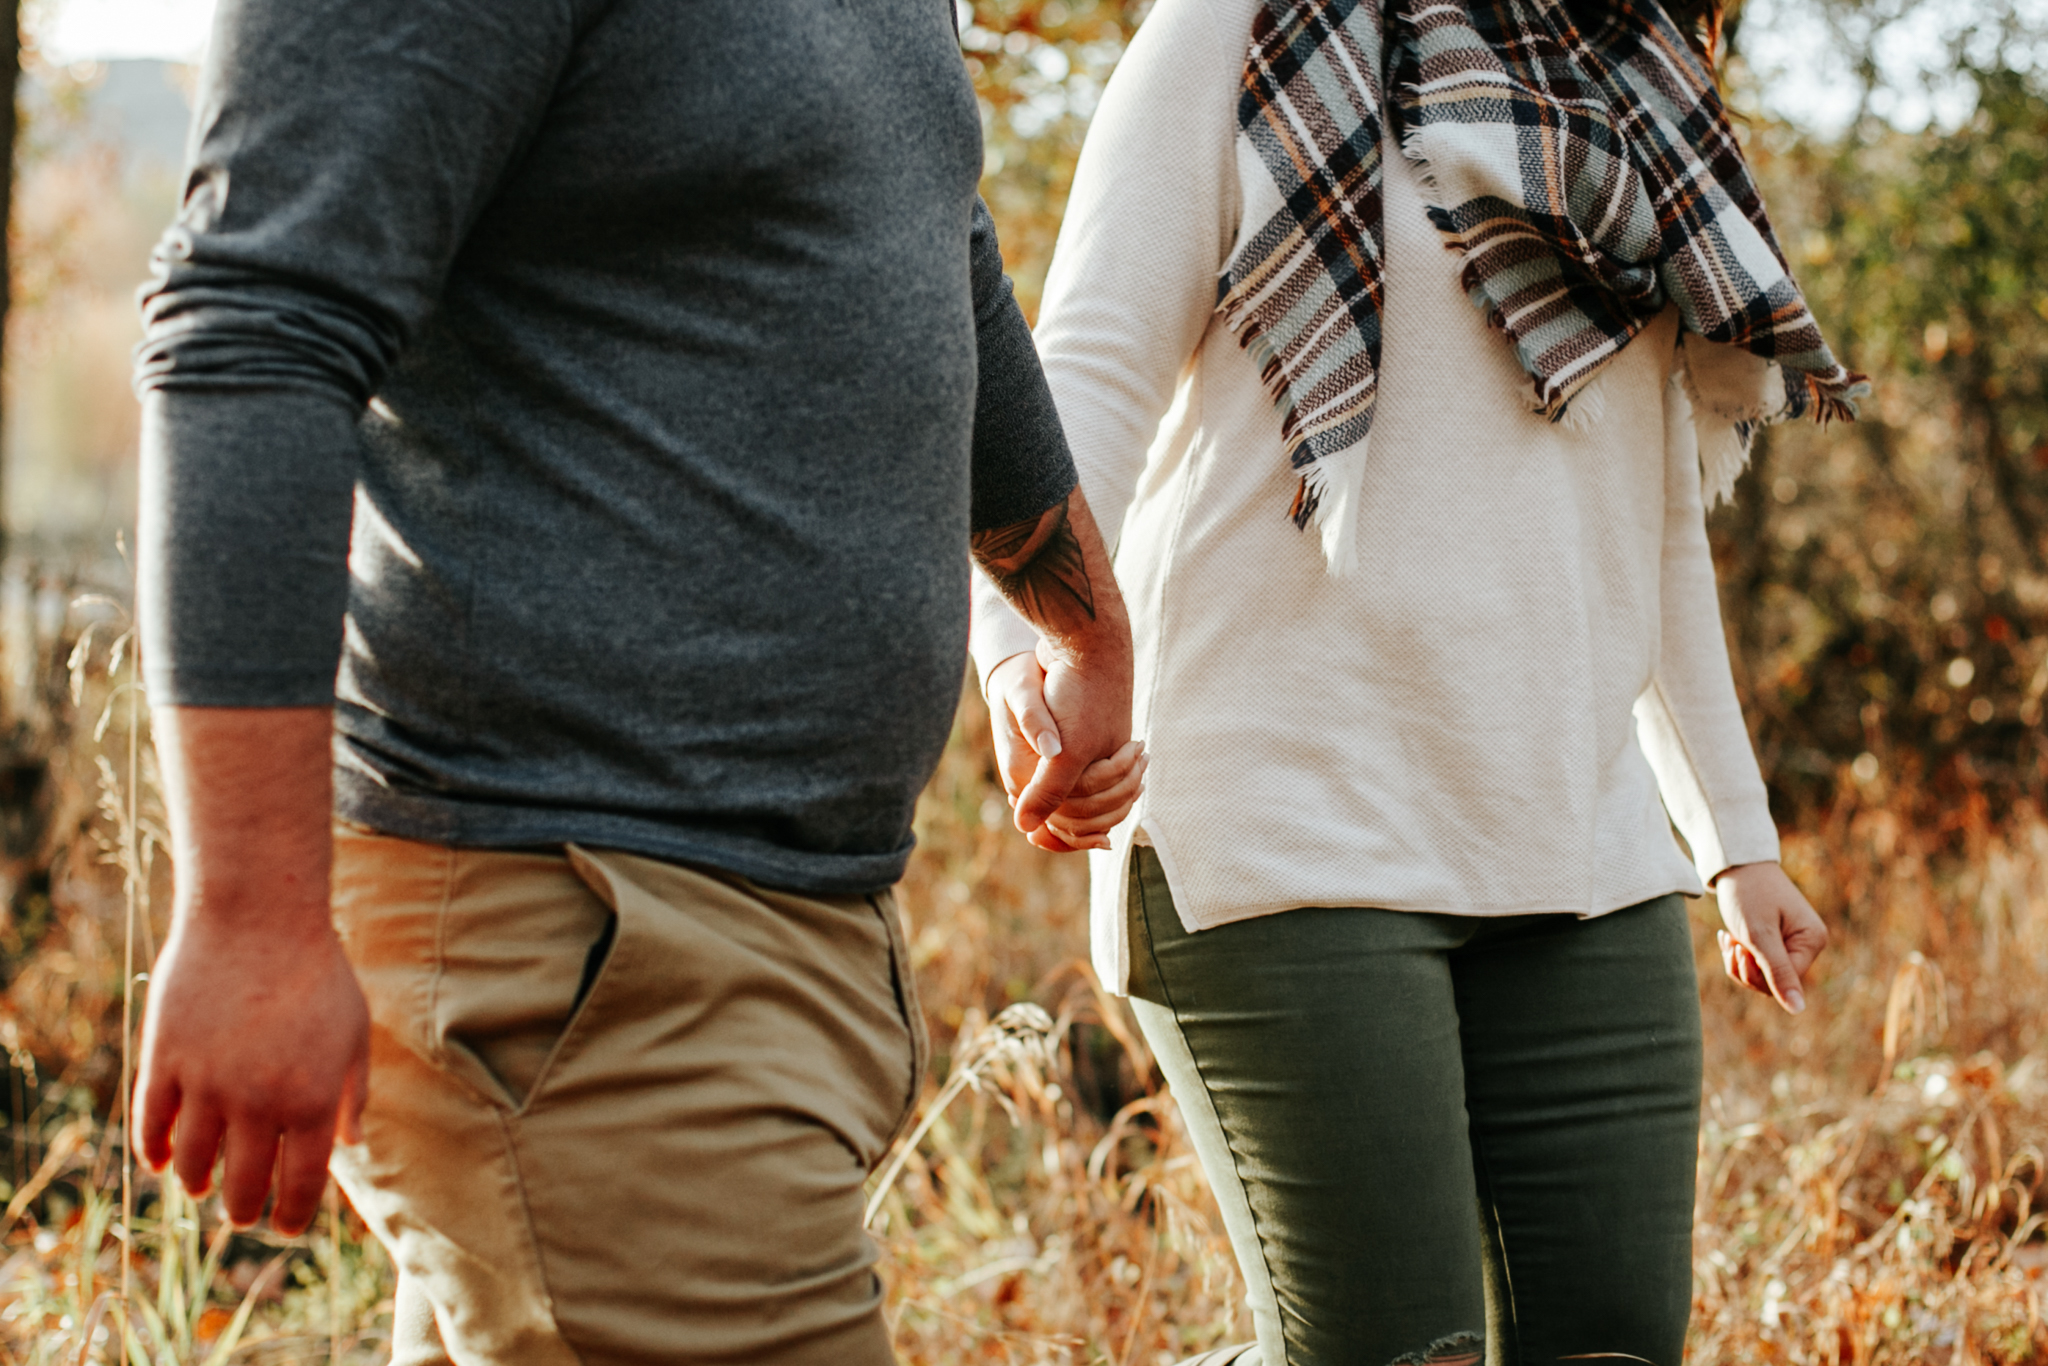 lethbridge-photographer-love-and-be-loved-photography-christy-bryan-fall-autumn-engagement-photo-image-picture-20.jpg